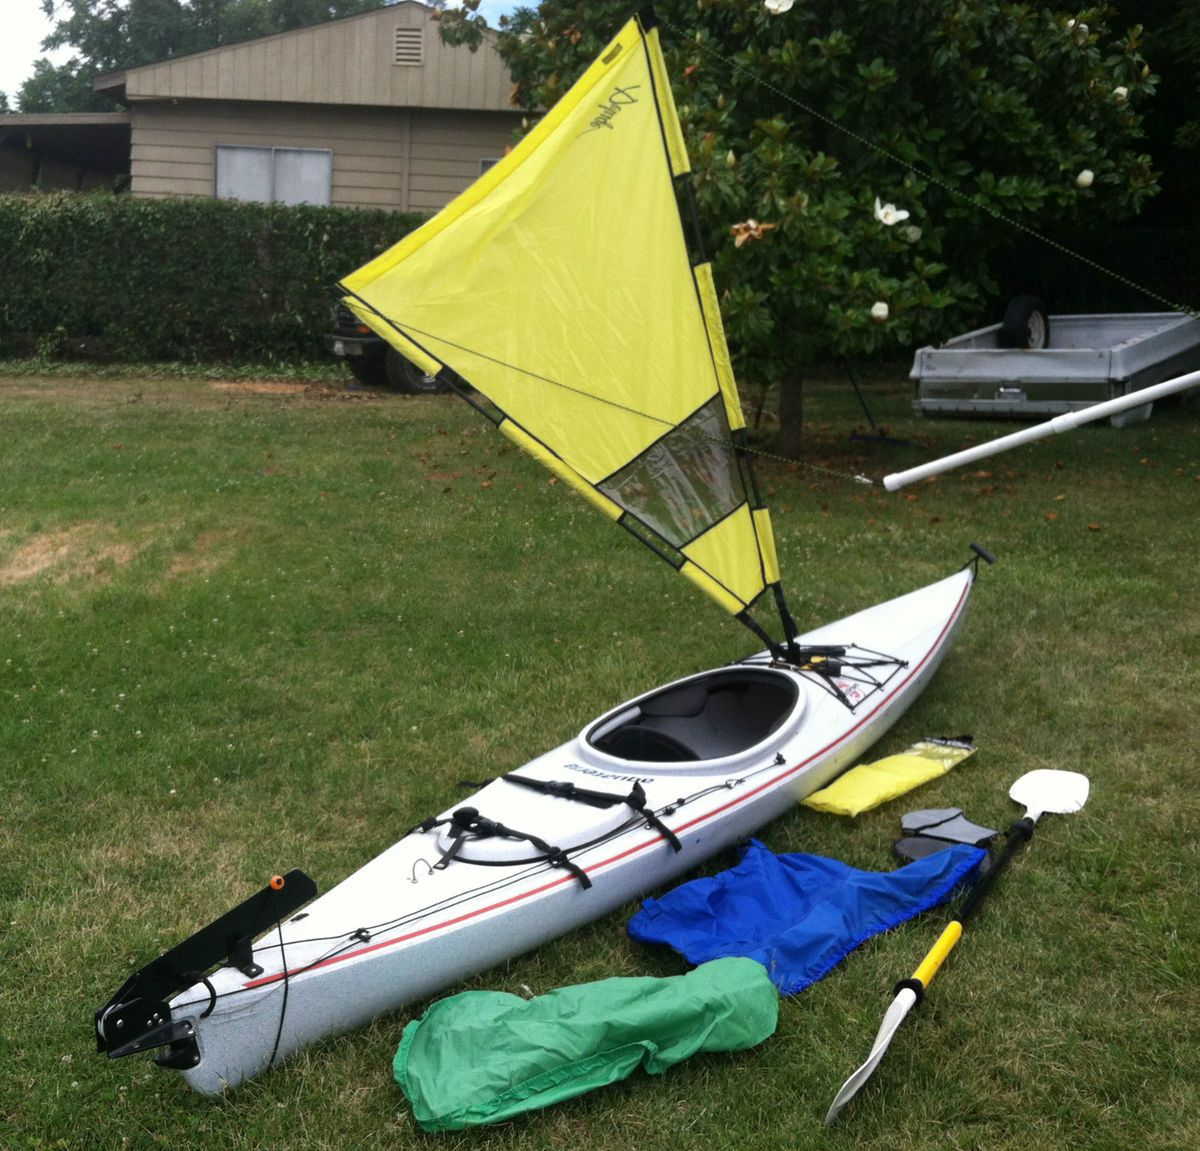 pop up rudder with Kayak 14 W Rudder Sail Paddle   More Everything You Need on What A Rich Guy Can Do Clive Palmer Is Building A Titanic Redo In China besides Boeing 747 Aircraft PCU Rudder Power Control Unit EBay in addition Kayak 14 W Rudder Sail Paddle   More Everything You Need in addition Disney Pixar Finding Dory Finding Dory Deluxe Exclusive Pvc Figure Set furthermore Showthread.